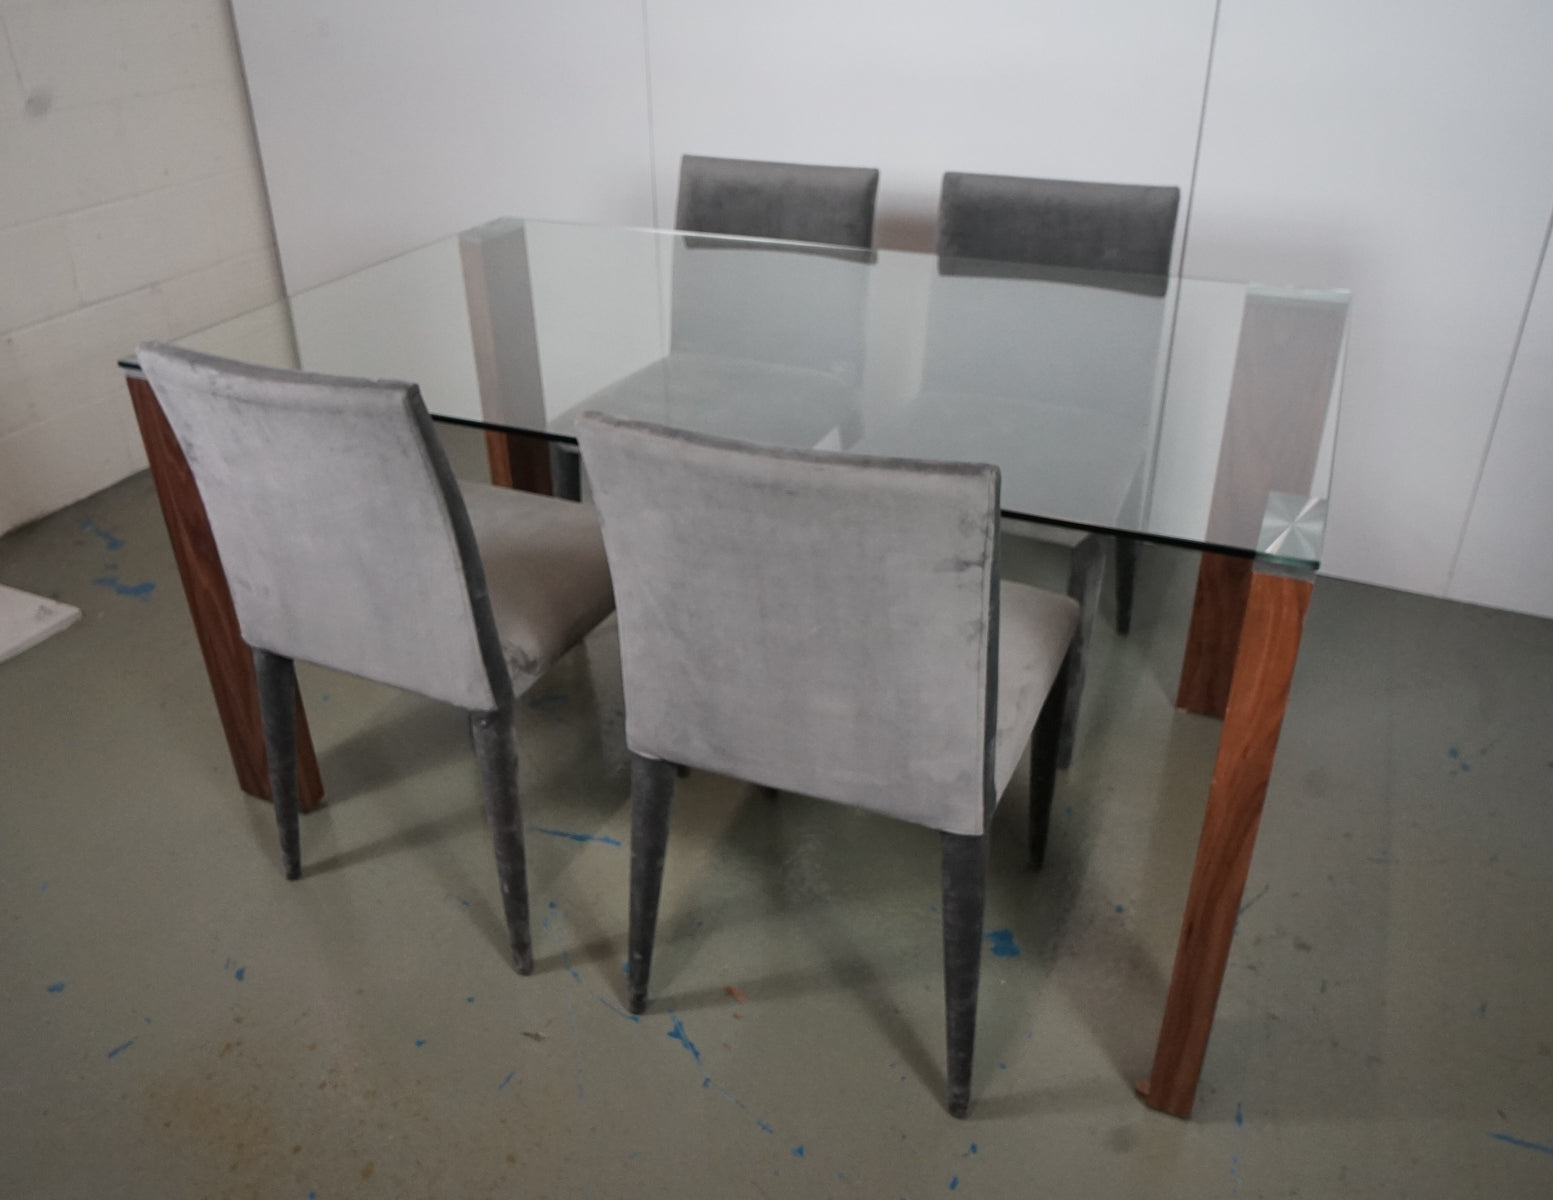 Dwell Dining Table and Chairs